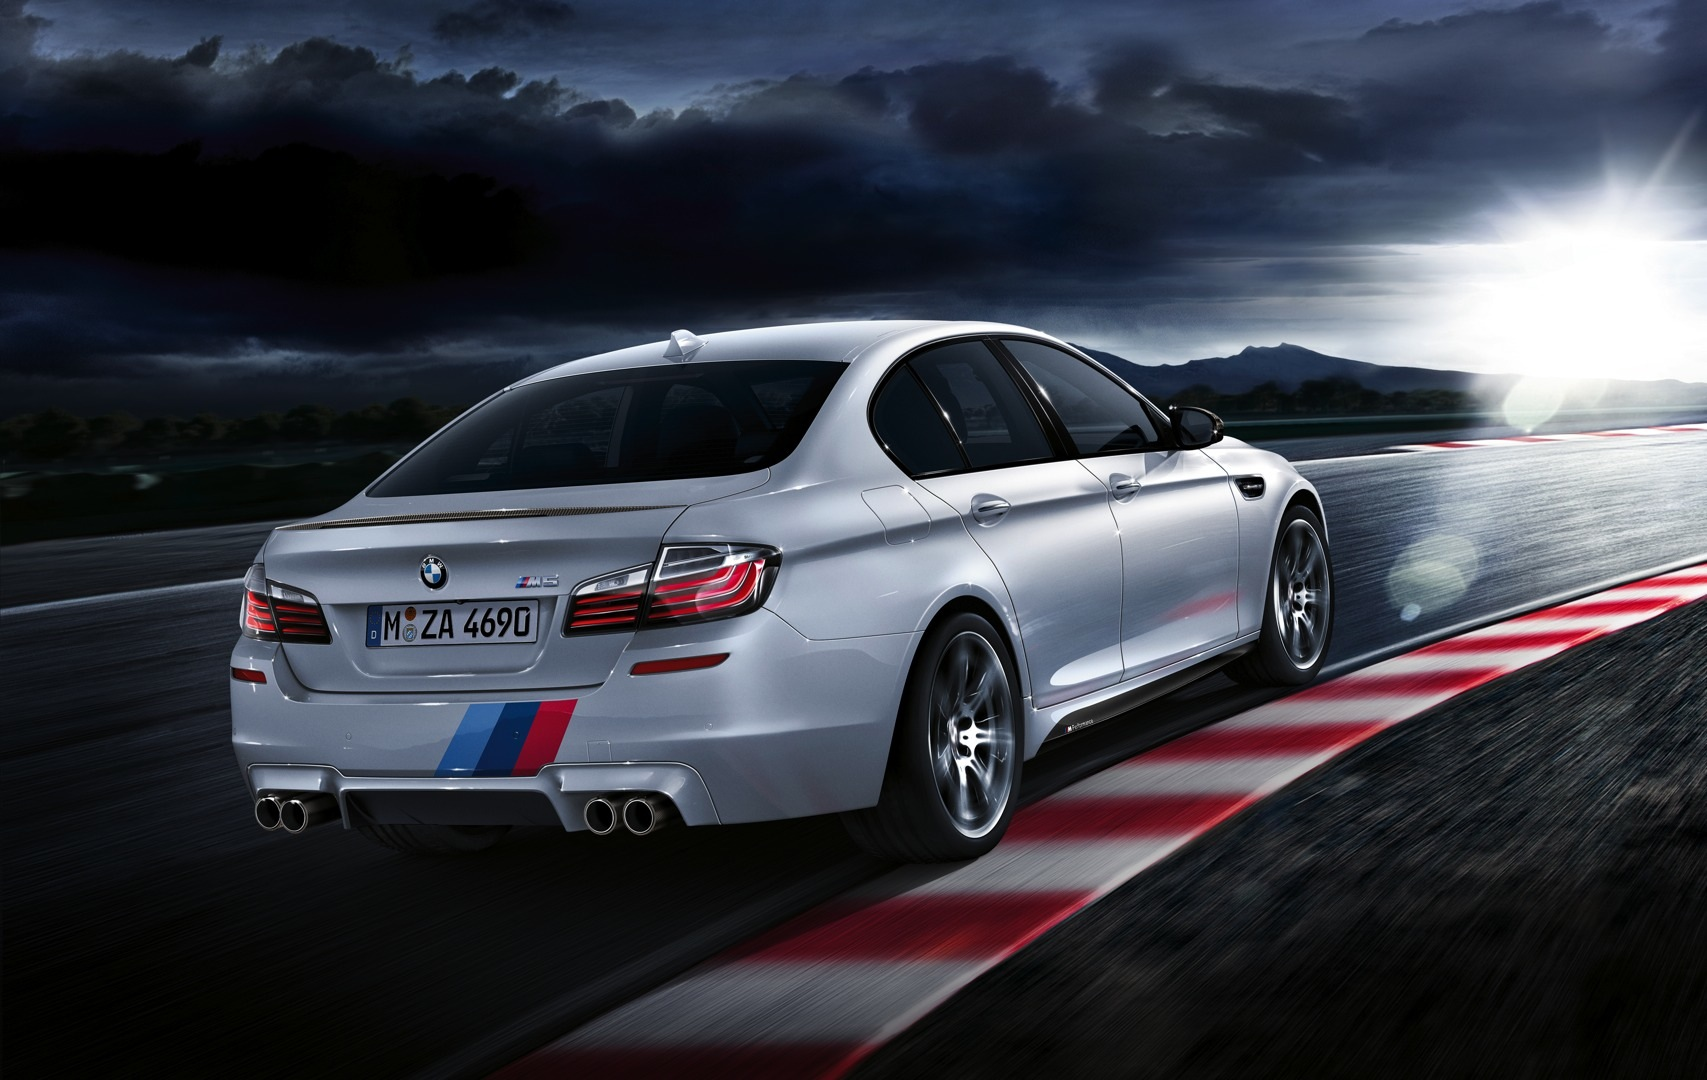 bmw m performance accessories for bmw m5 now available. Black Bedroom Furniture Sets. Home Design Ideas